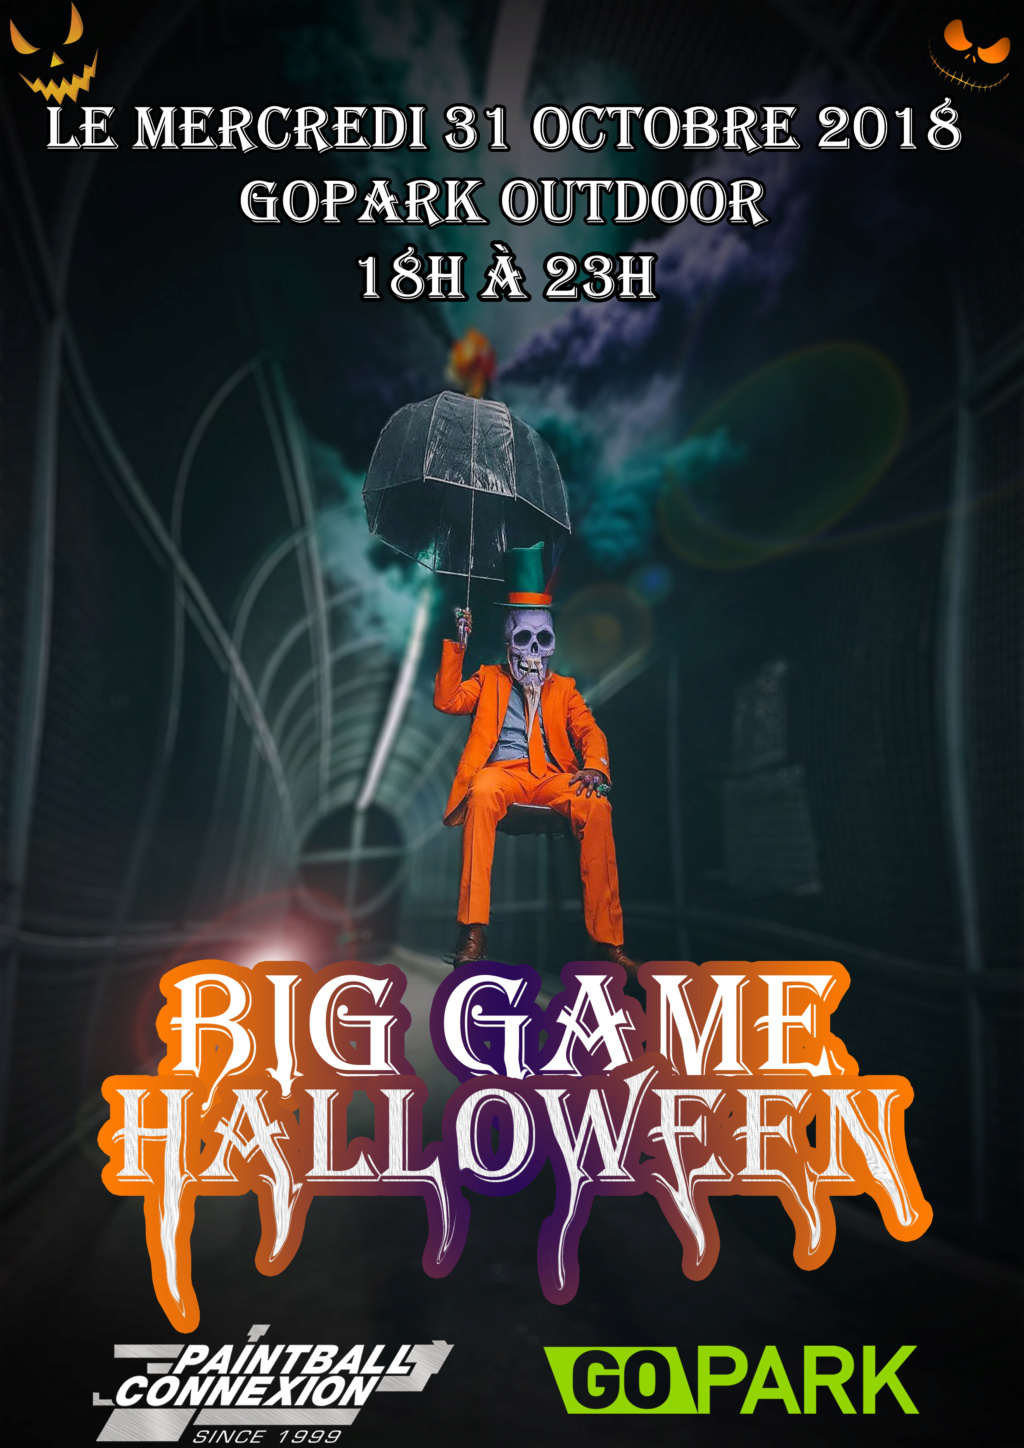 GOPARK : BIG GAME - Mercredi 31 Octobre 18h-23h Visu_b10